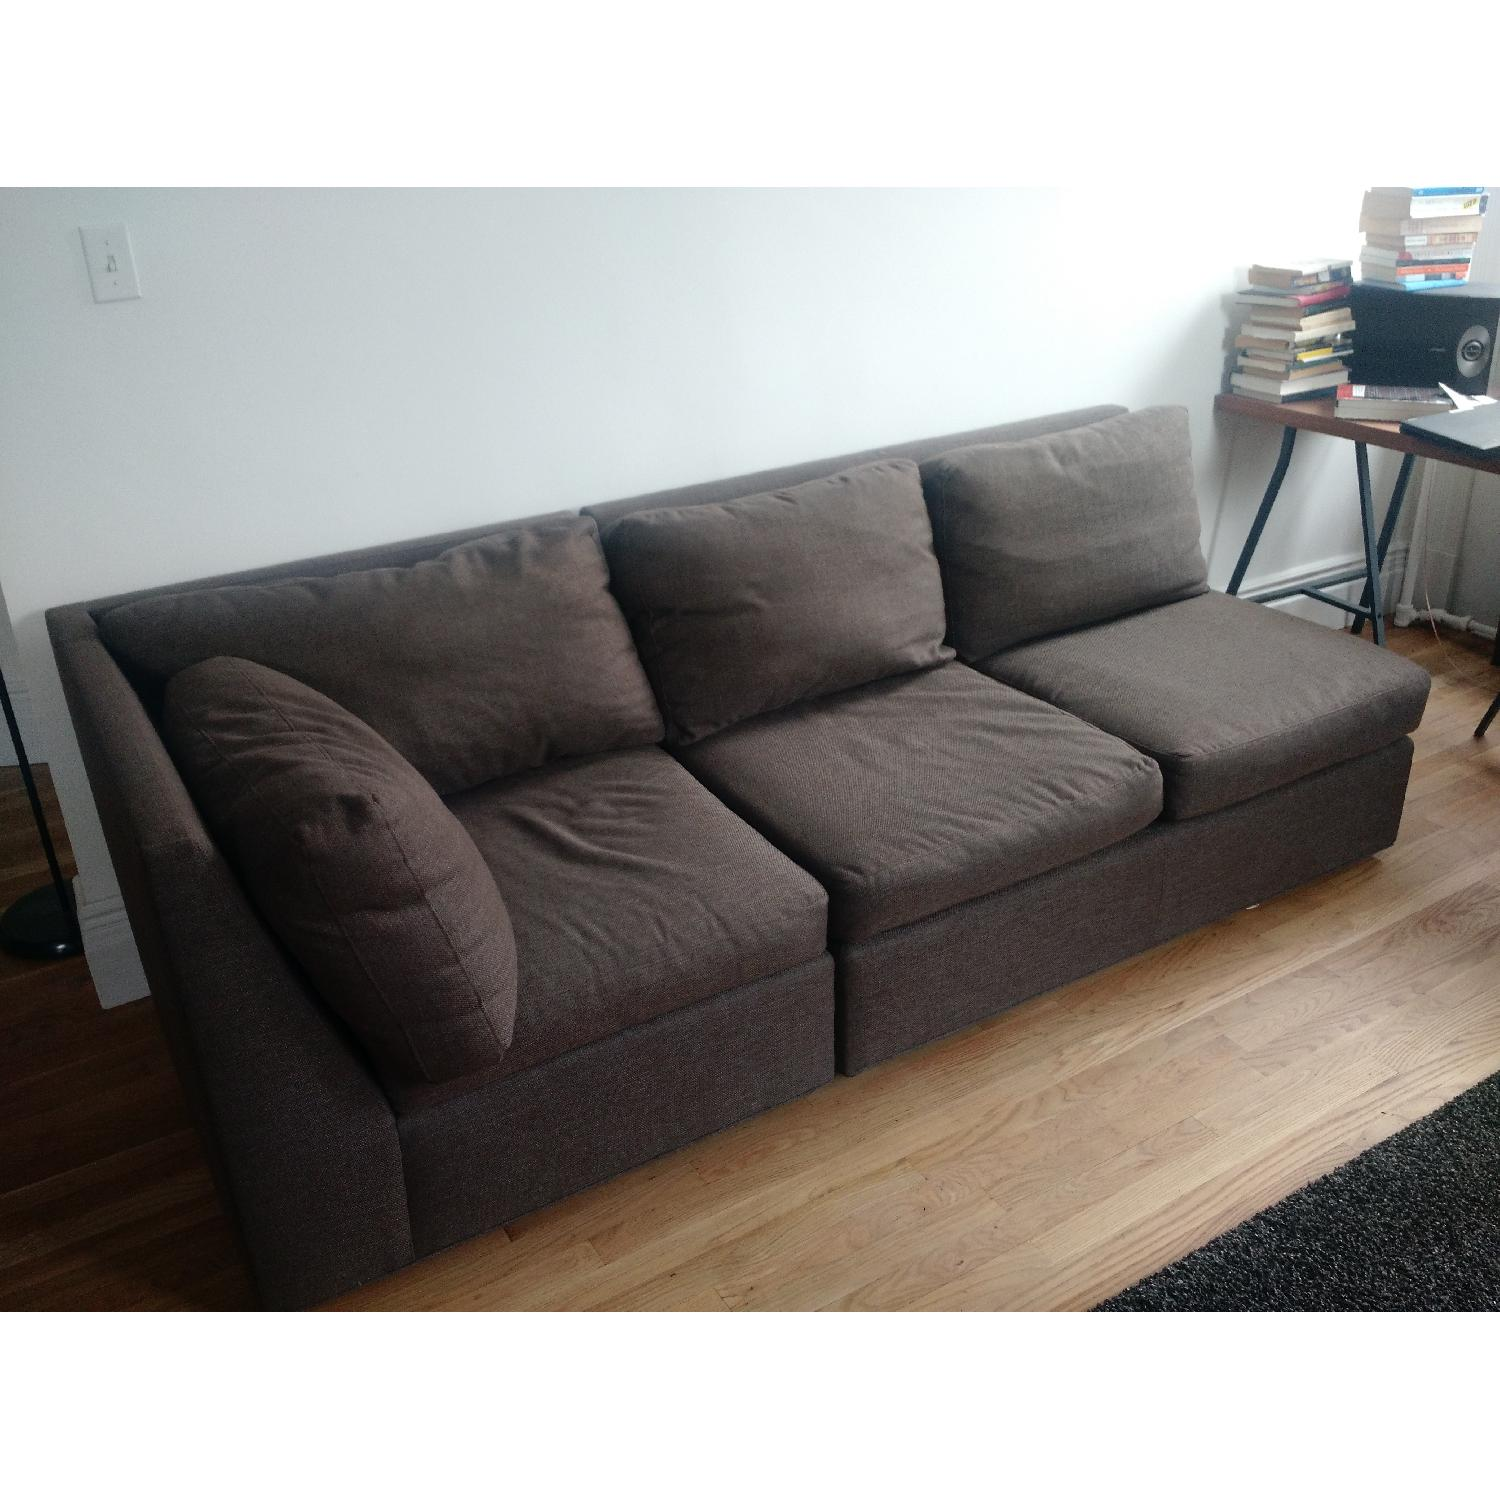 Crate & Barrel City Two-Piece Sectional - image-1